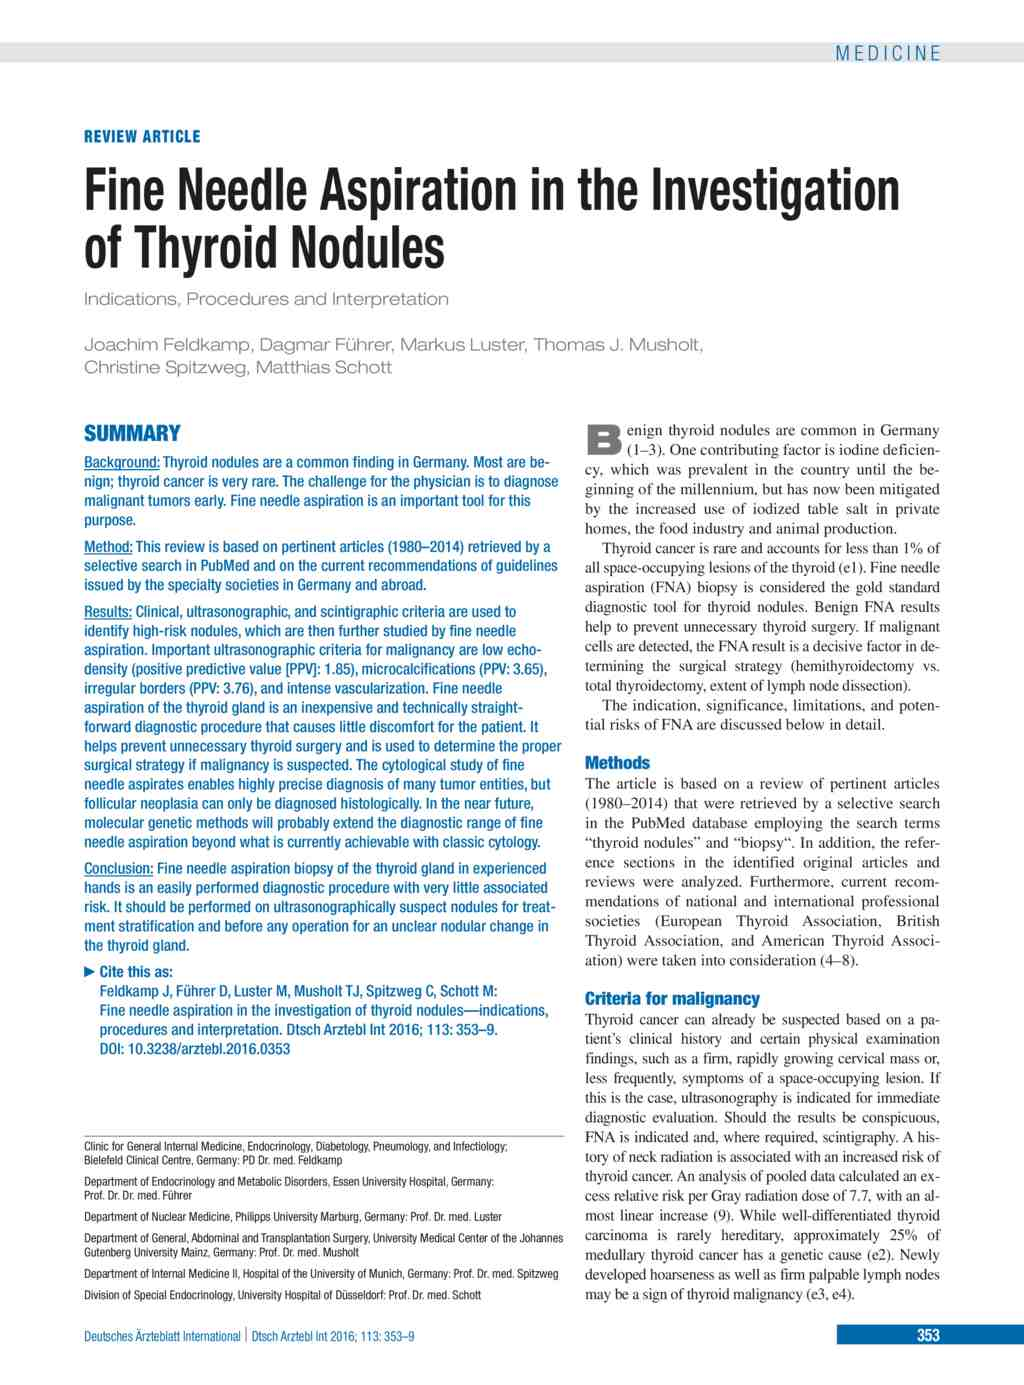 Fine Needle Aspiration In The Investigation Of Thyroid Nodules